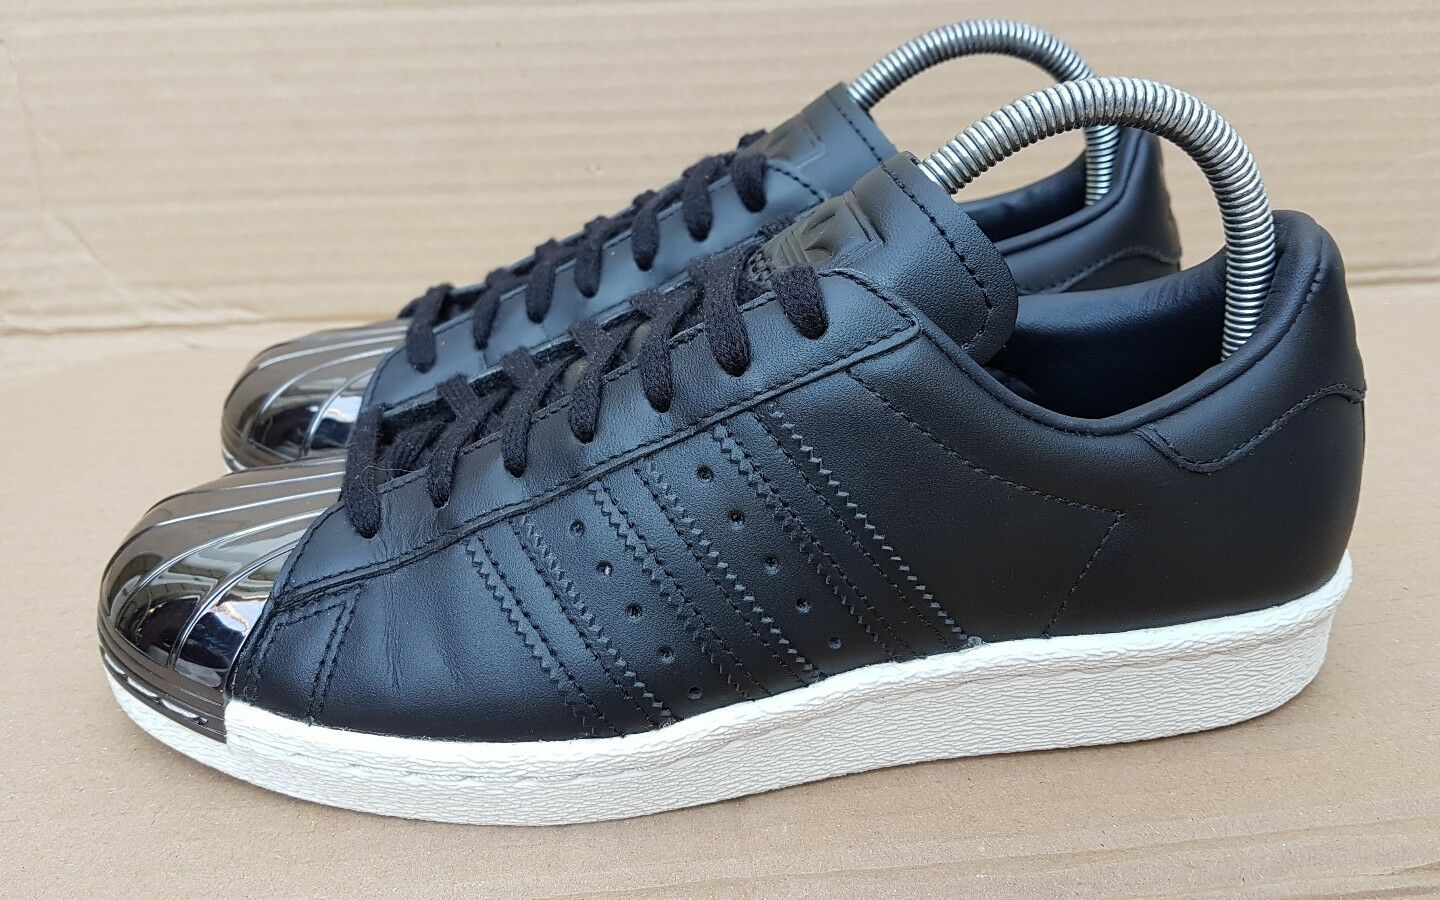 ADIDAS SUPERSTAR 80'S TRAINERS ALL BLACK WITH SILVER METAL TOE IN SIZE 5 UK RARE